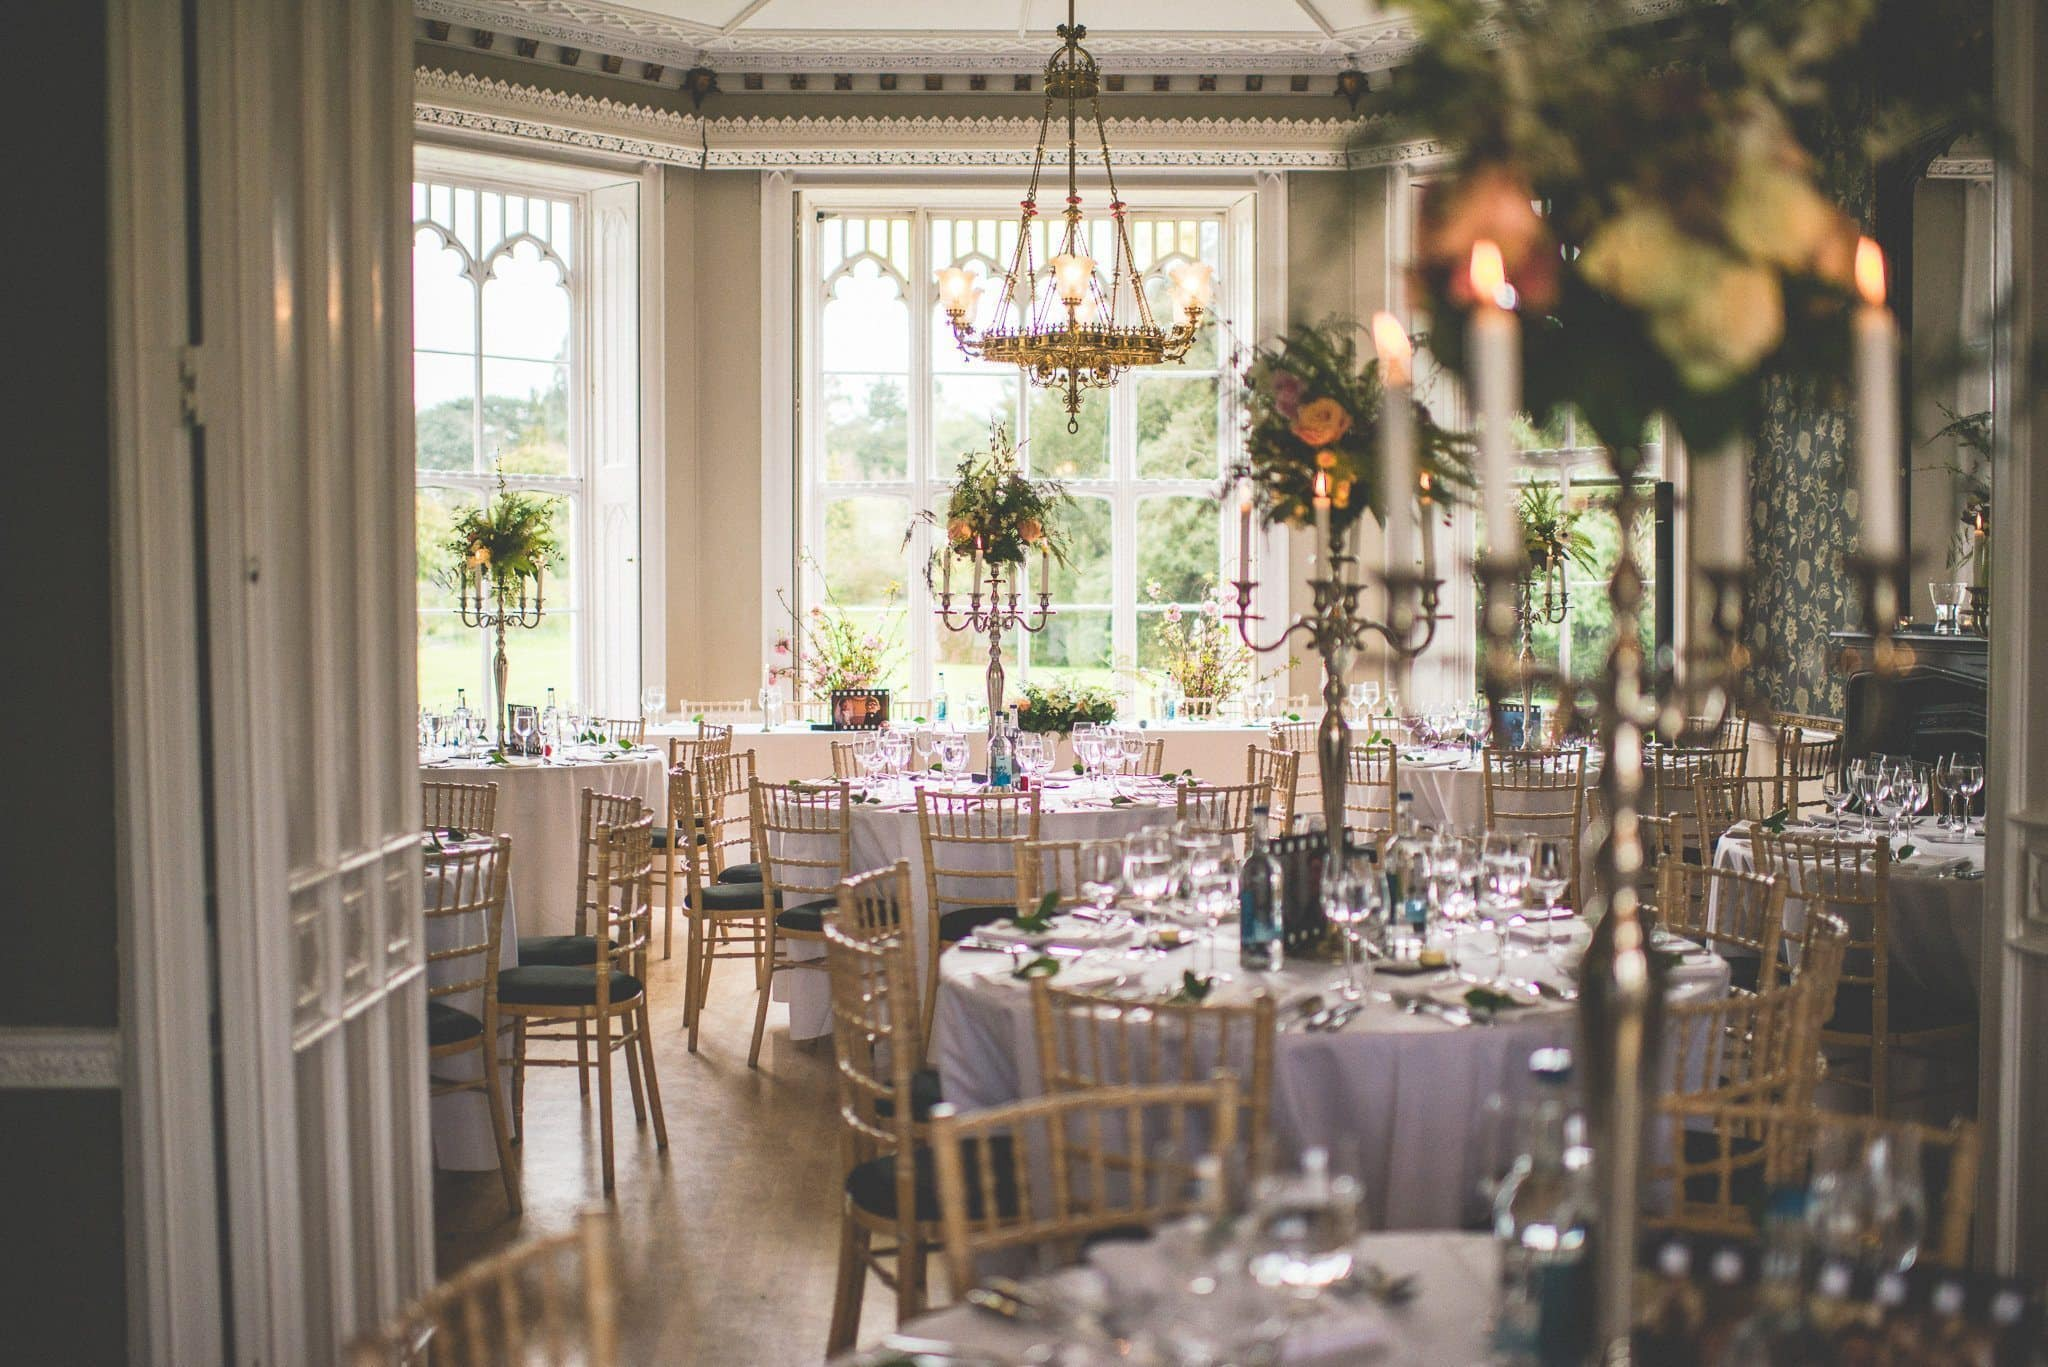 A shot through the door of the reception room showing the round tables decorated with candelabras and tall peach and cream floral arrangements